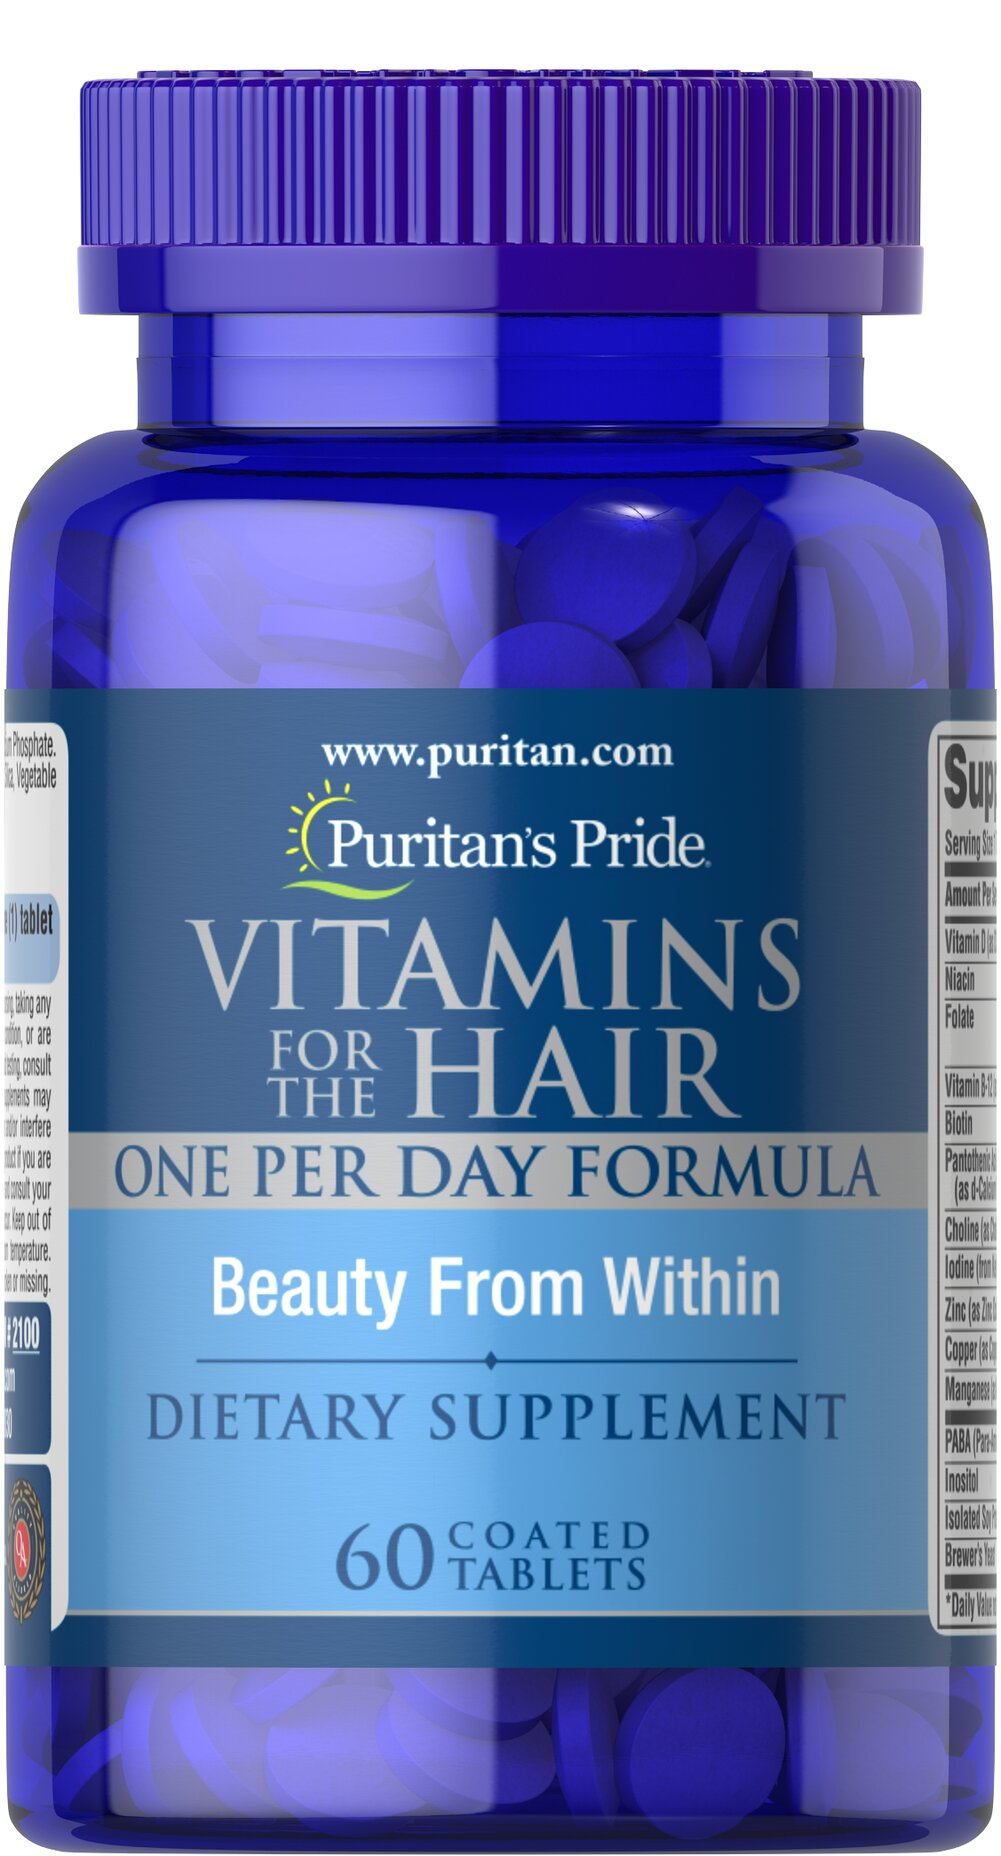 Vitamins for the Hair